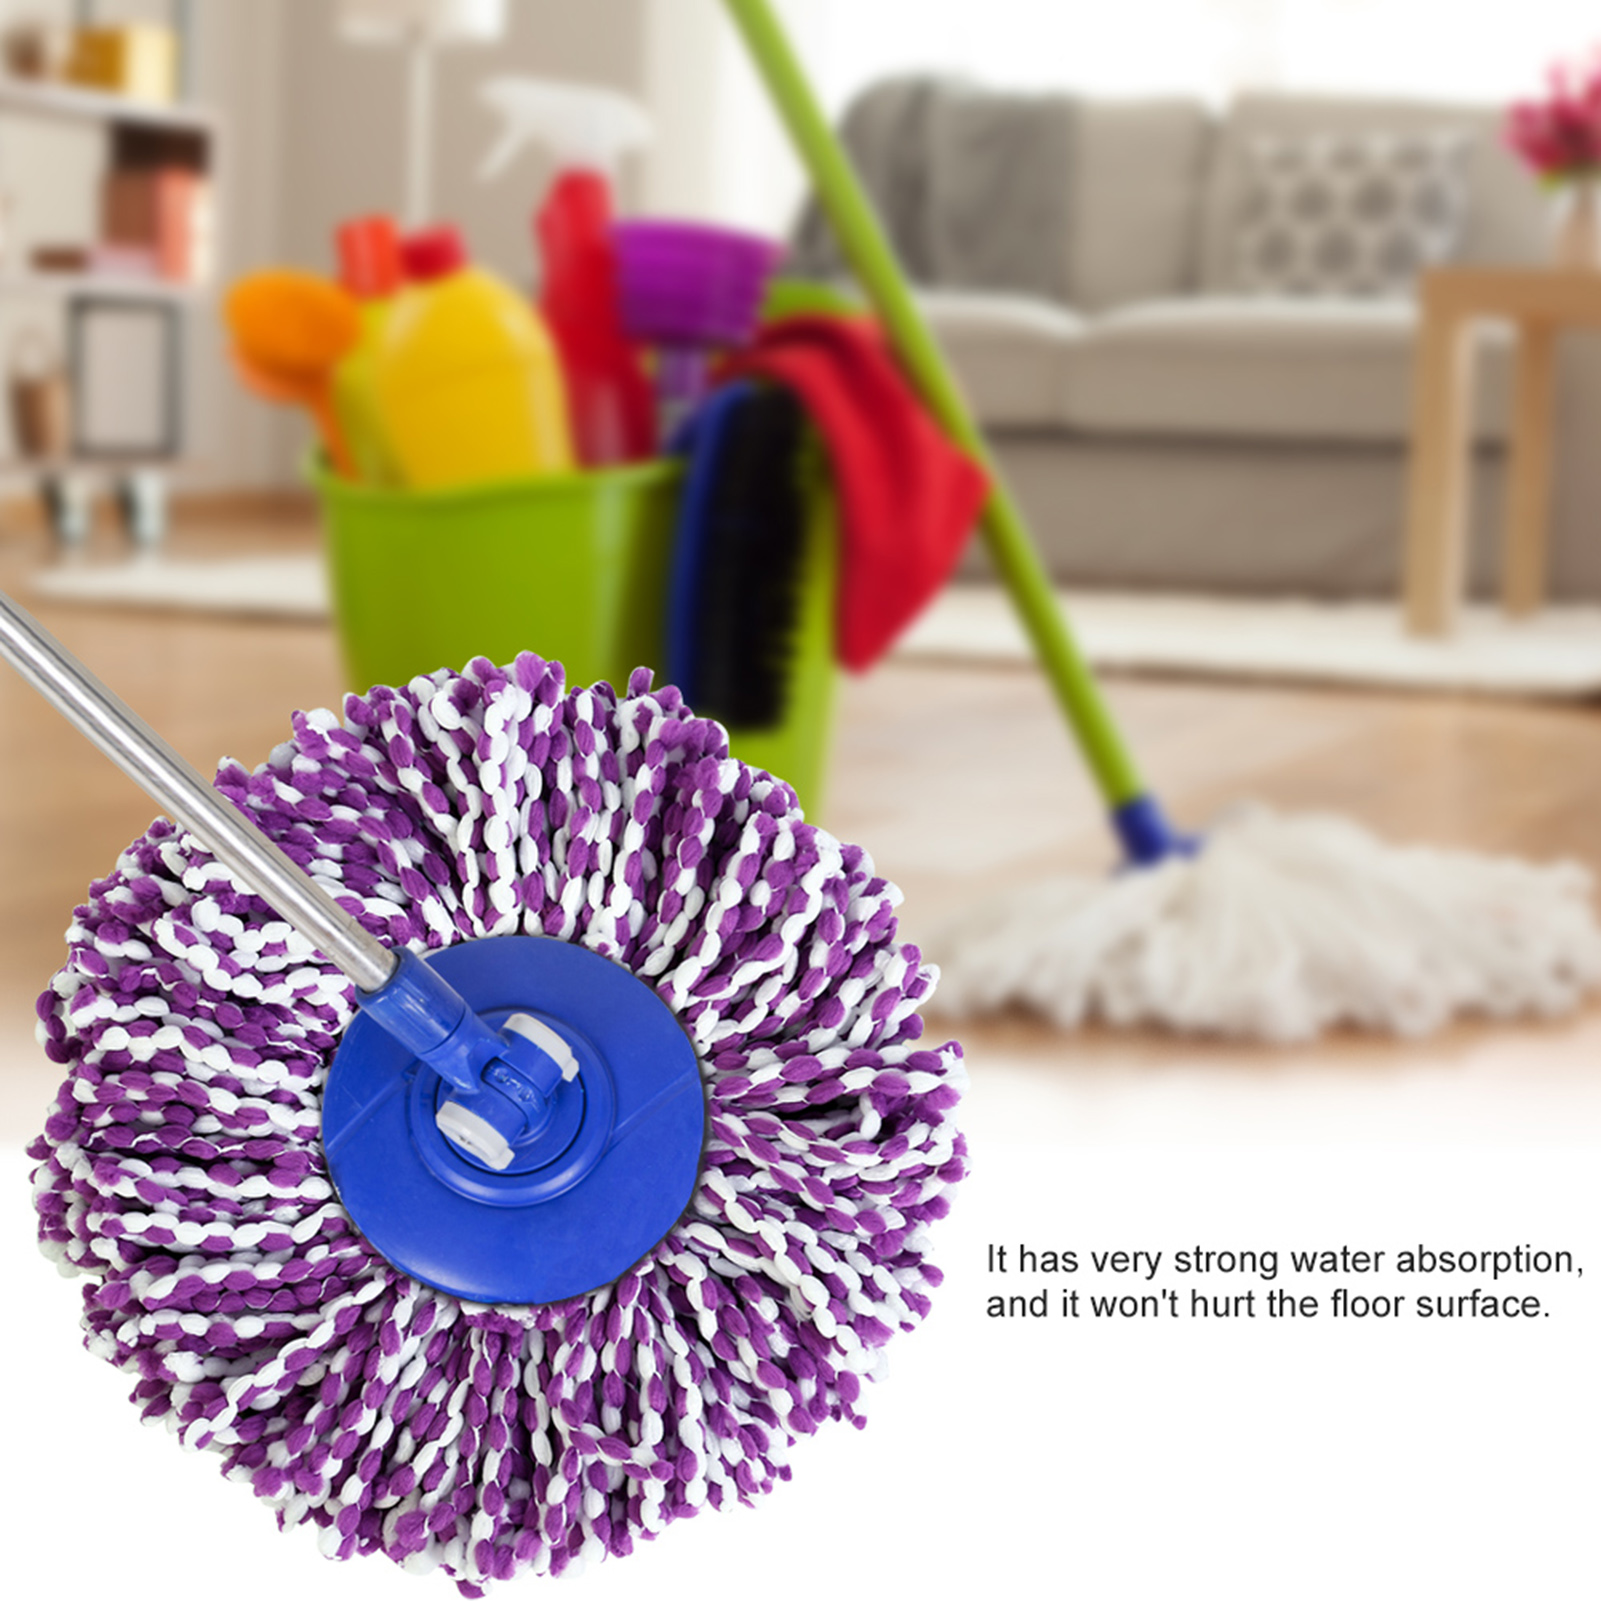 Spinning-Mops-Head-Microfiber-Refill-Rotating-360-Mop-for-Cleaning-AG thumbnail 14